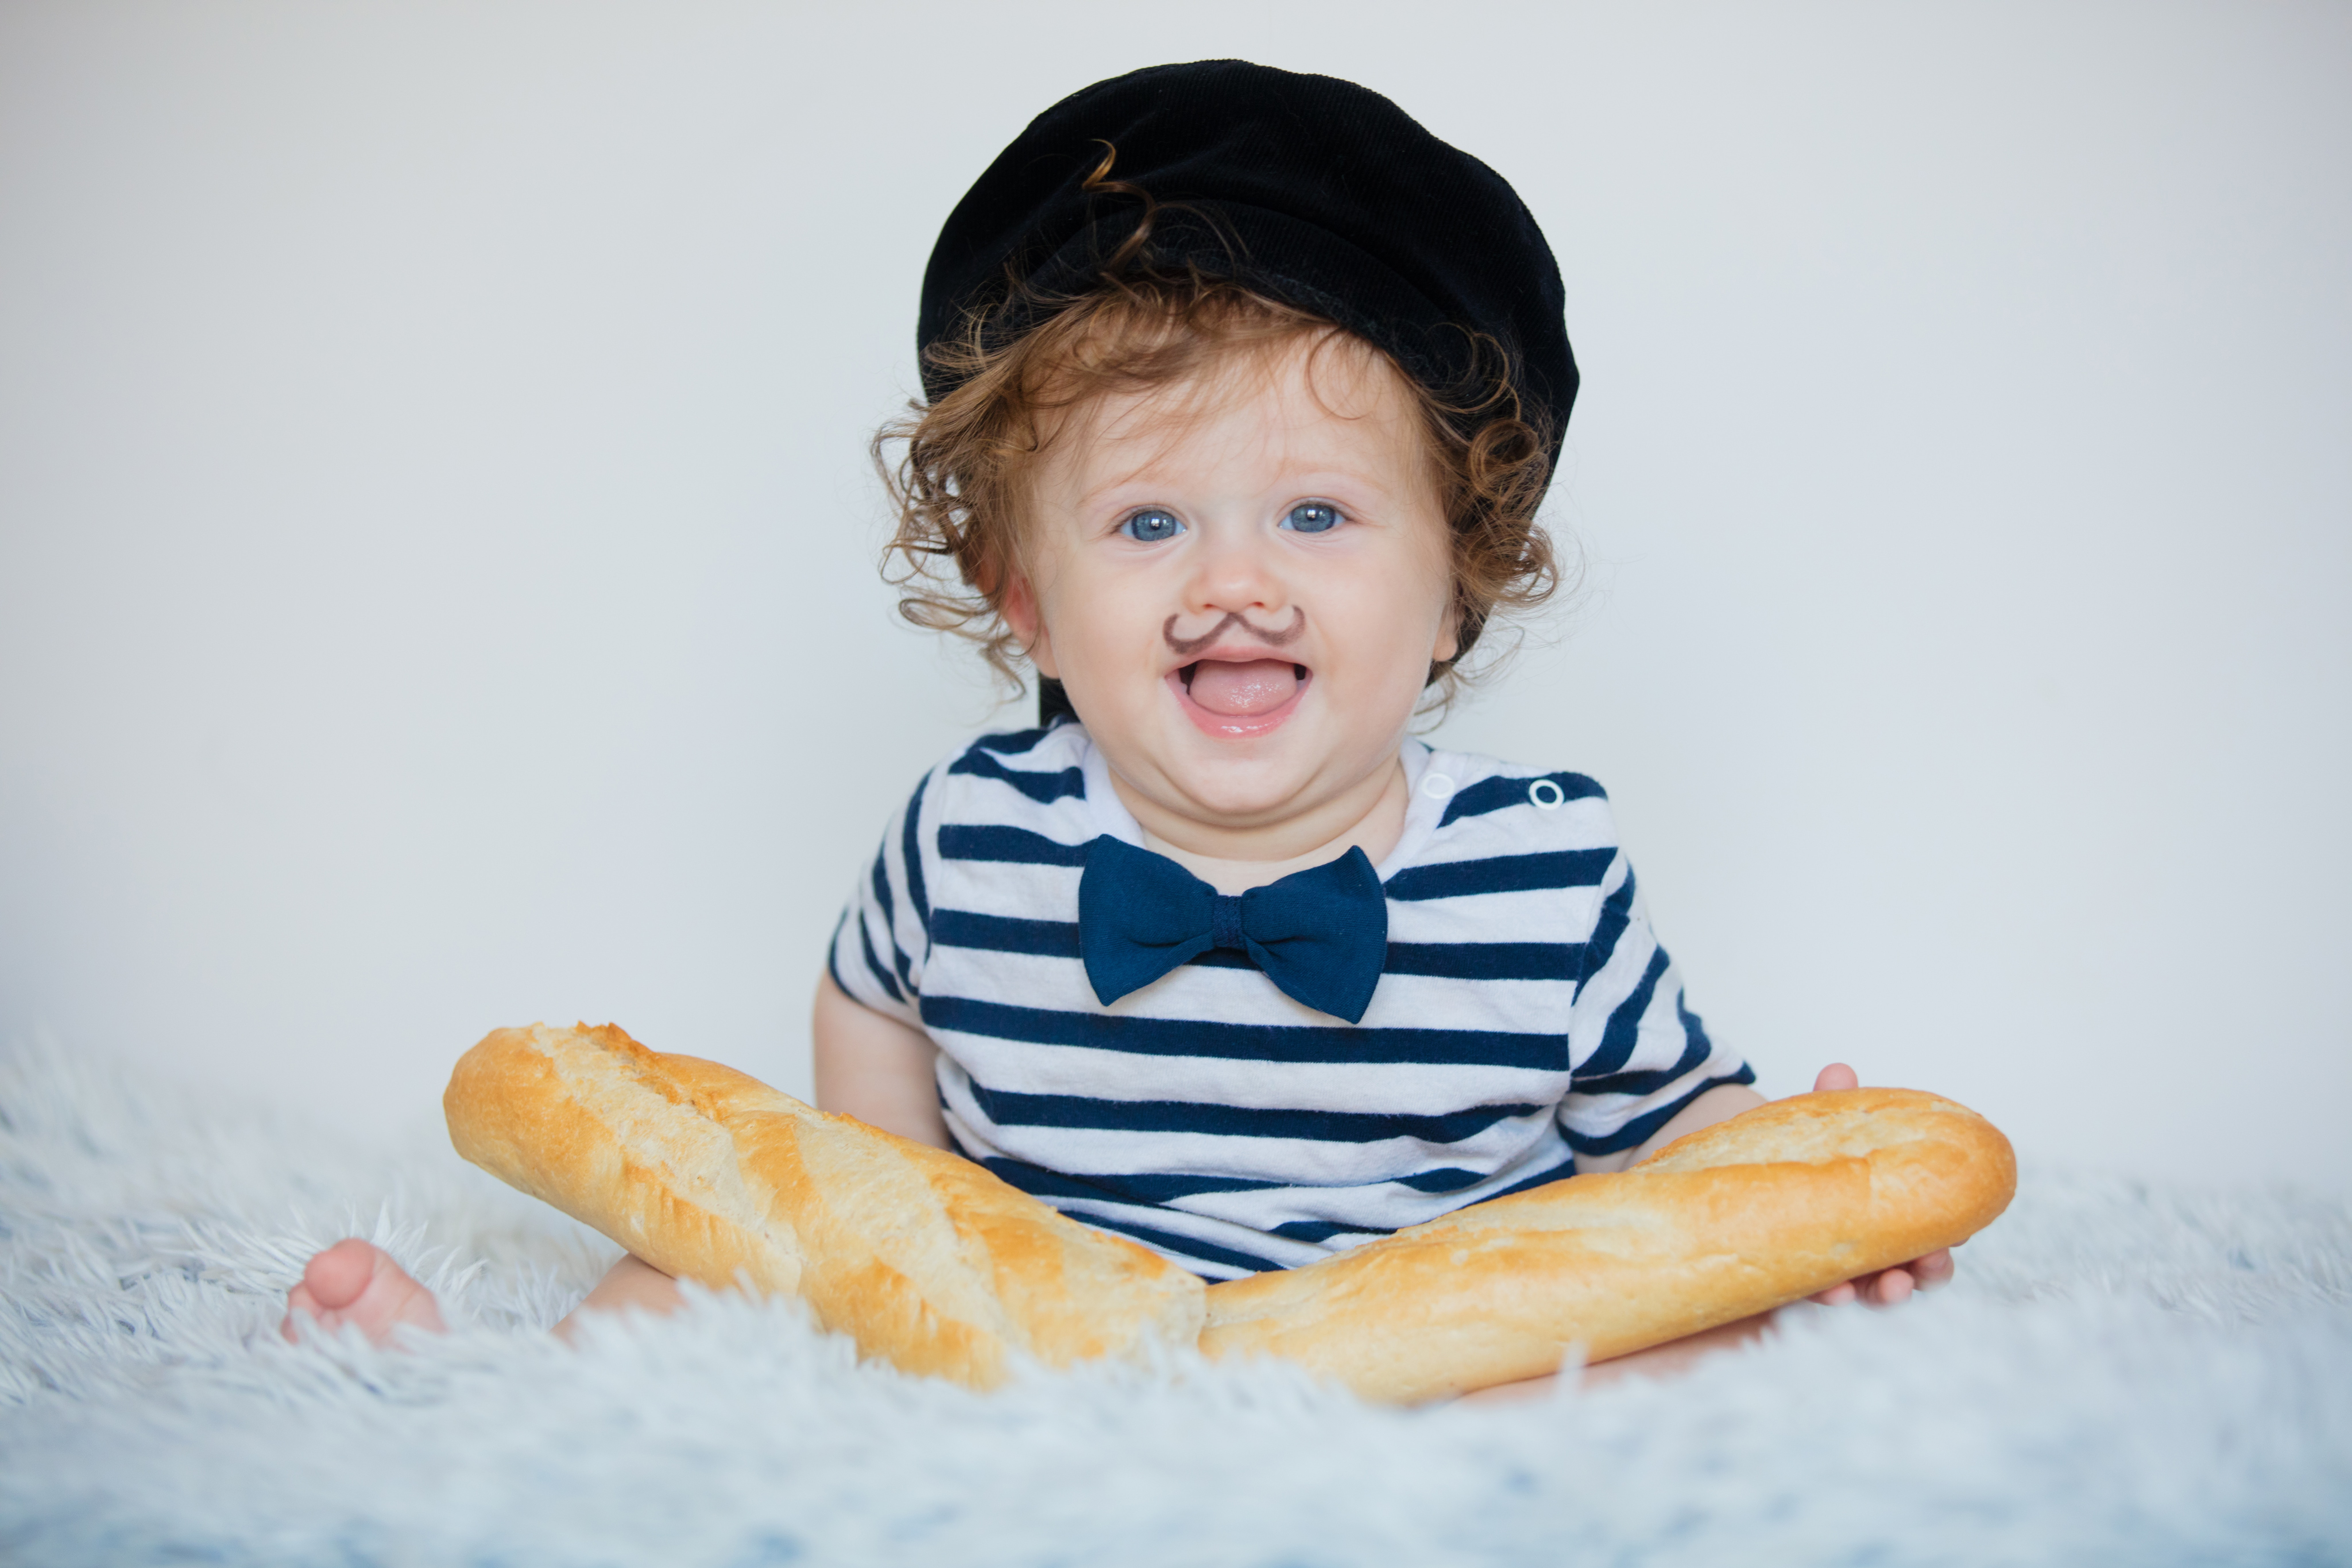 Little baby with mustache, beret and baguette